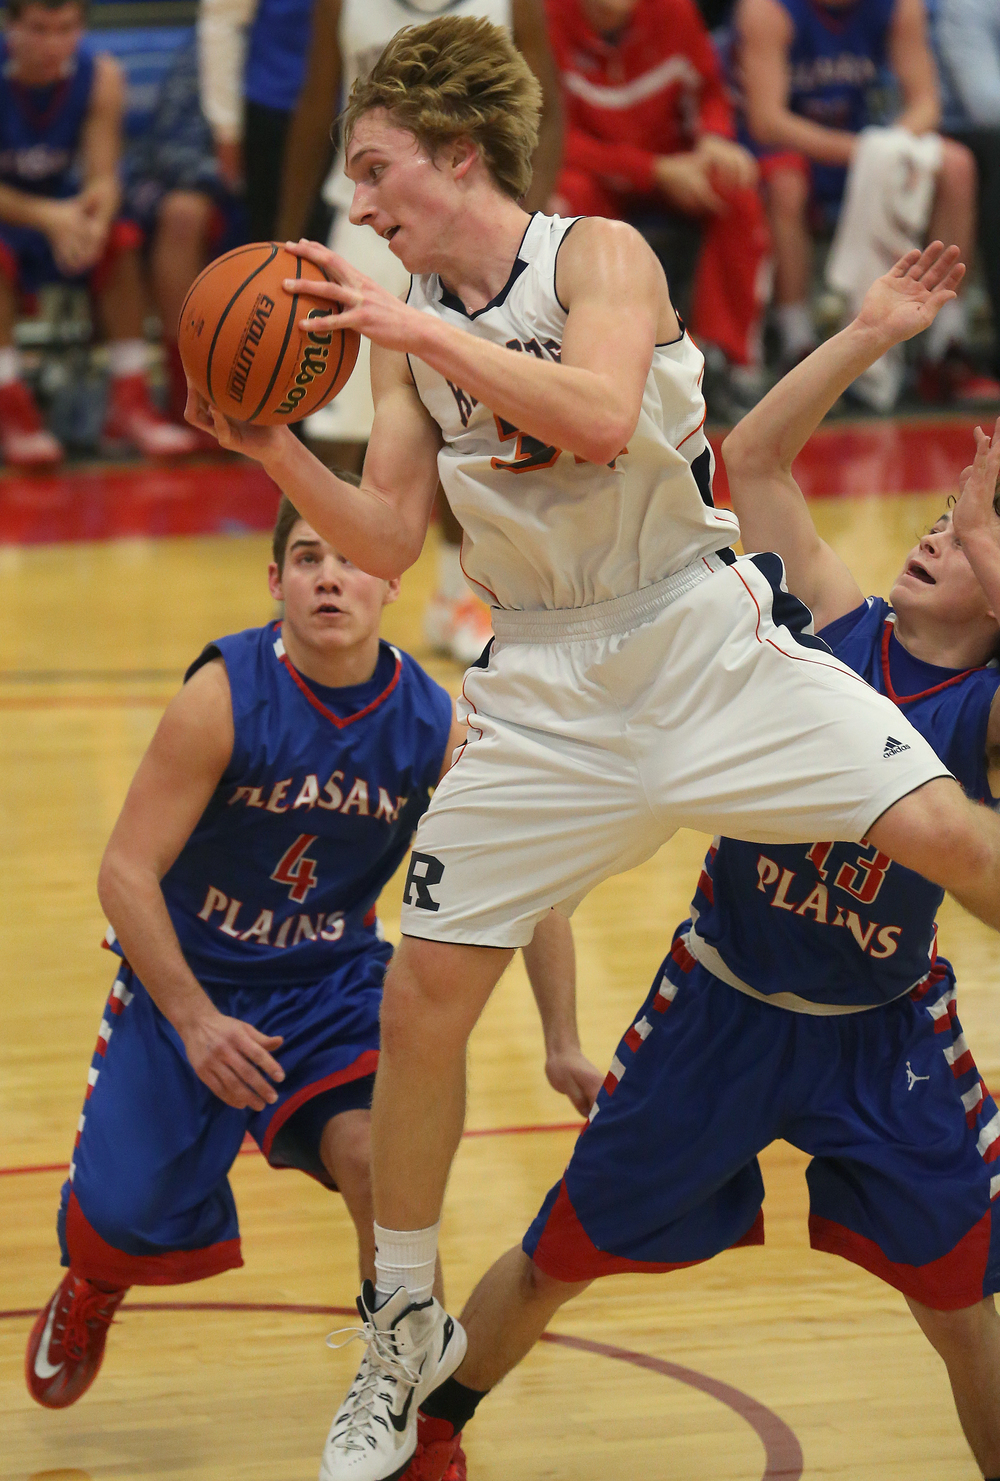 Rochester's Matt McClintock sails past Plains defenders Aden Sachs at left and Cole Greer in route to putting two points during late first half action Thursday night. Rochester defeated Pleasant Plains 61-37 in a semifinal game at the Sangamon County Basketball Tournament at Cass gymnasium at Lincoln Land Community College in Springfield on Wednesday evening, Jan. 14, 2015. David Spencer/The State Journal-Register